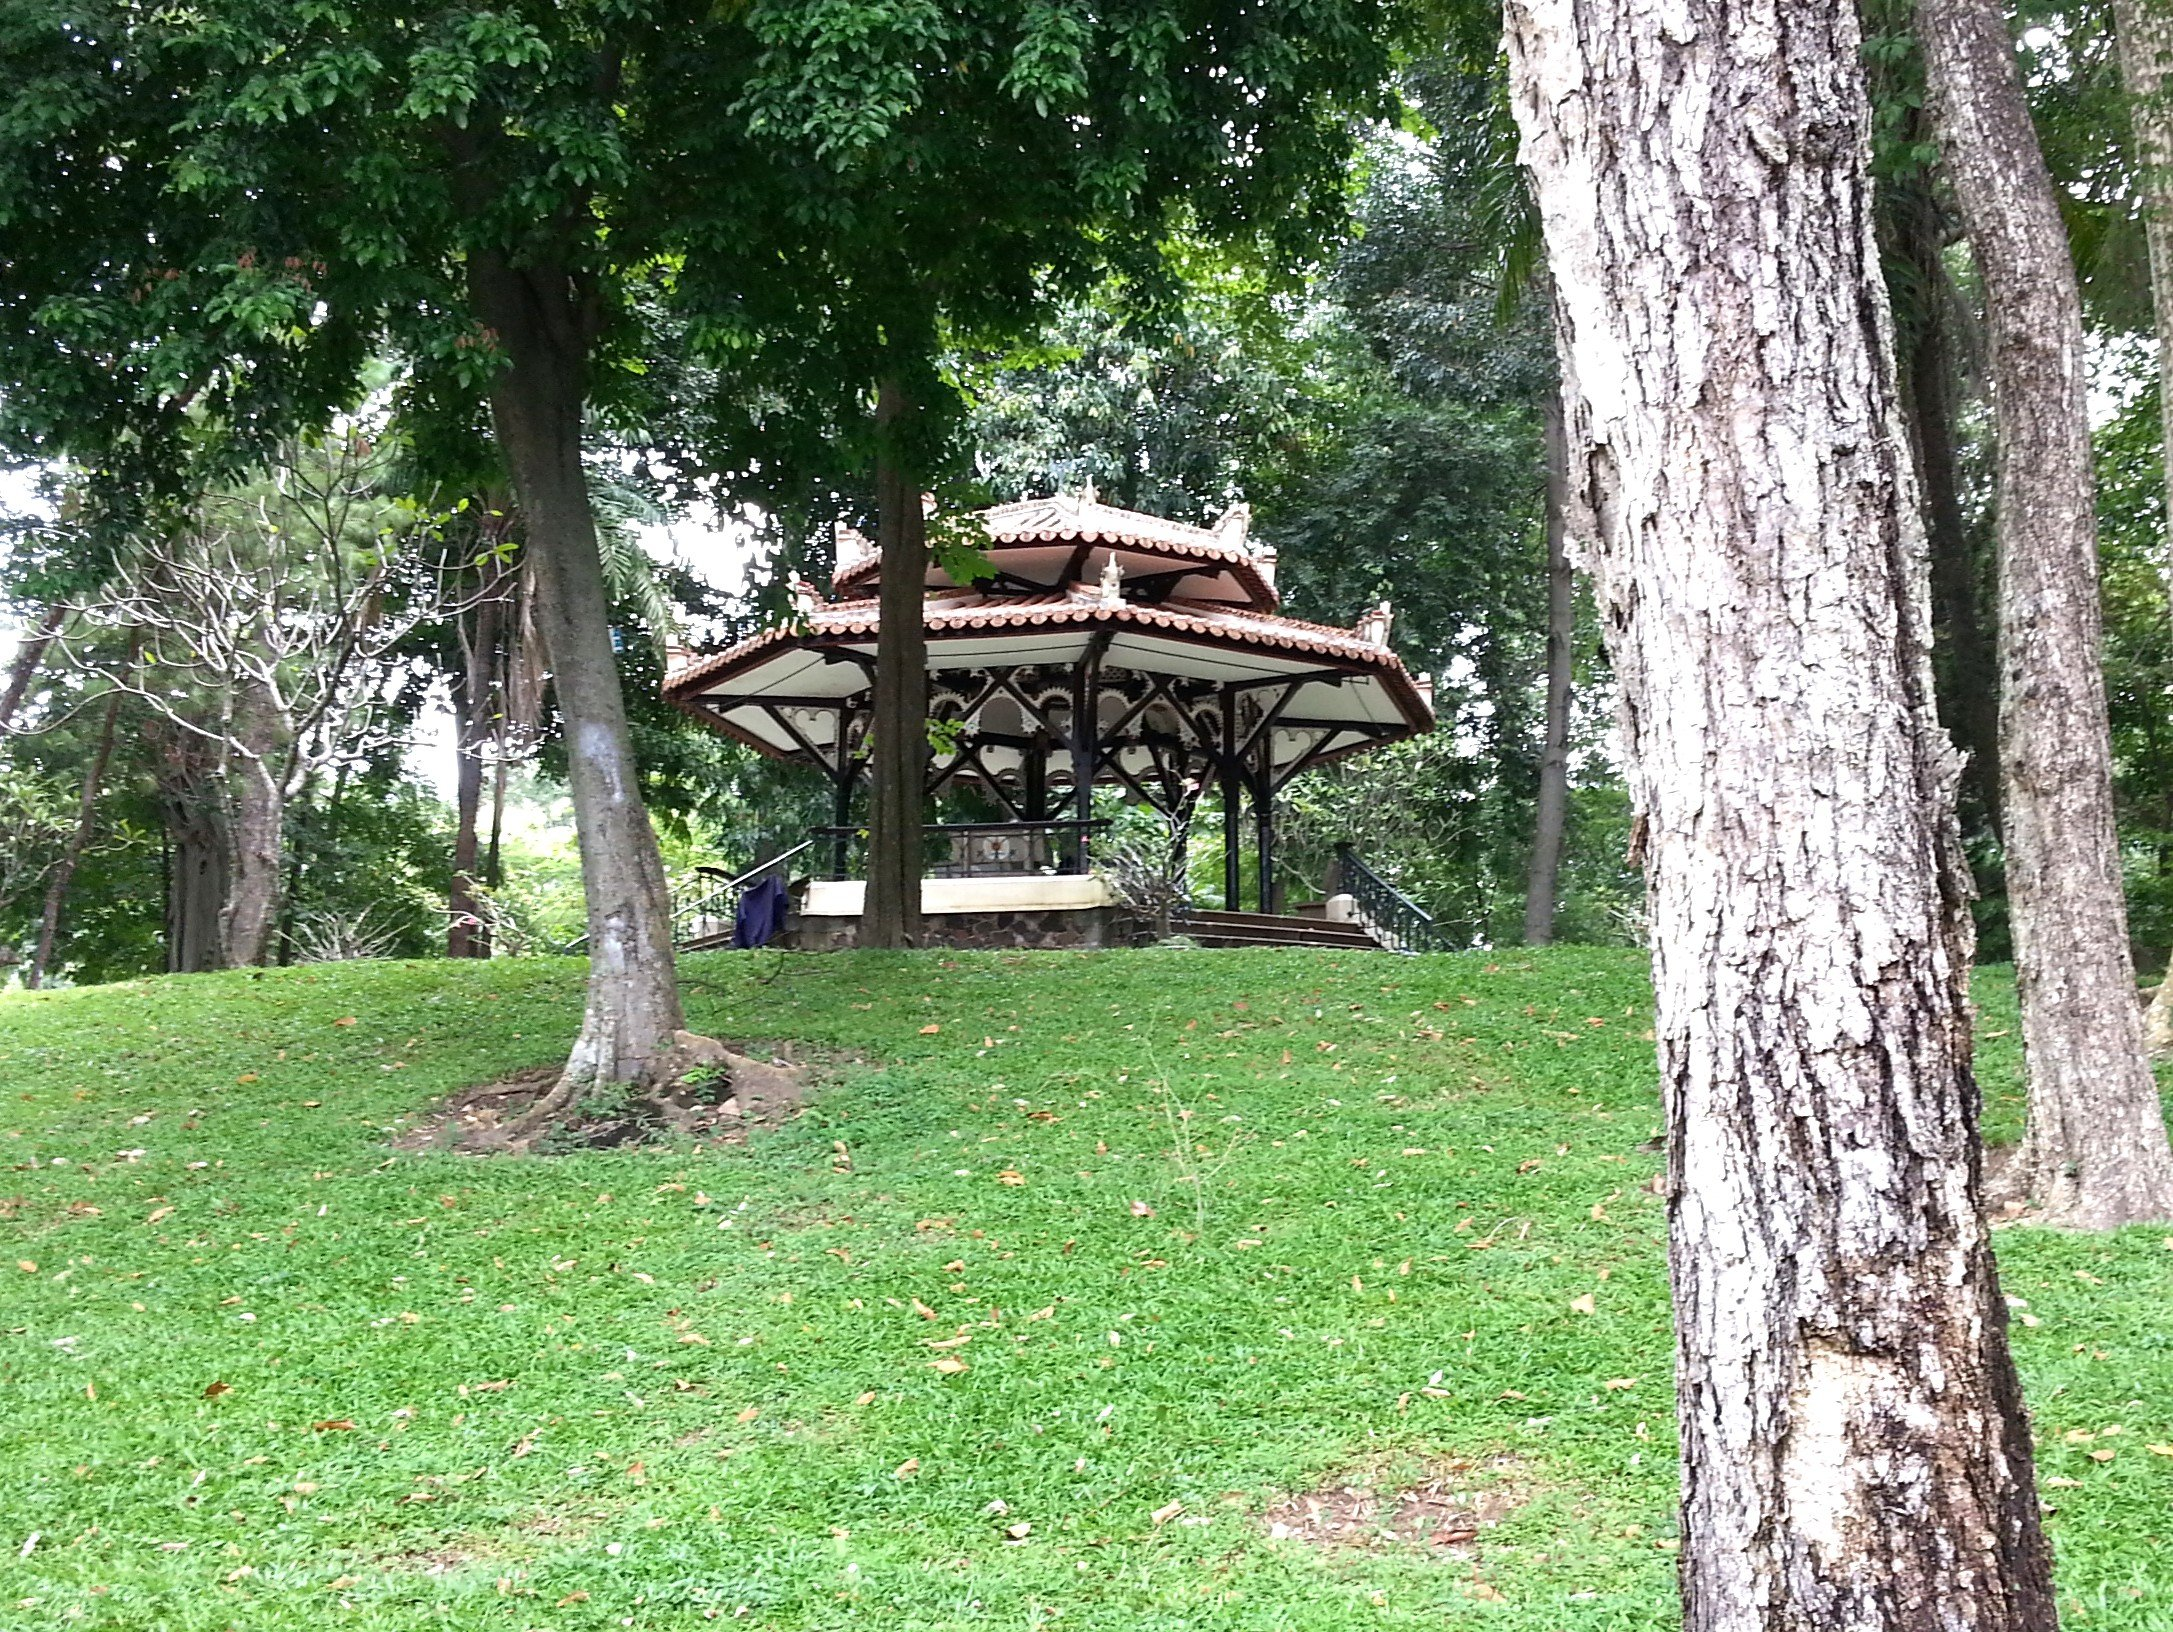 Pavilion in the gardens of the Reunification Palace